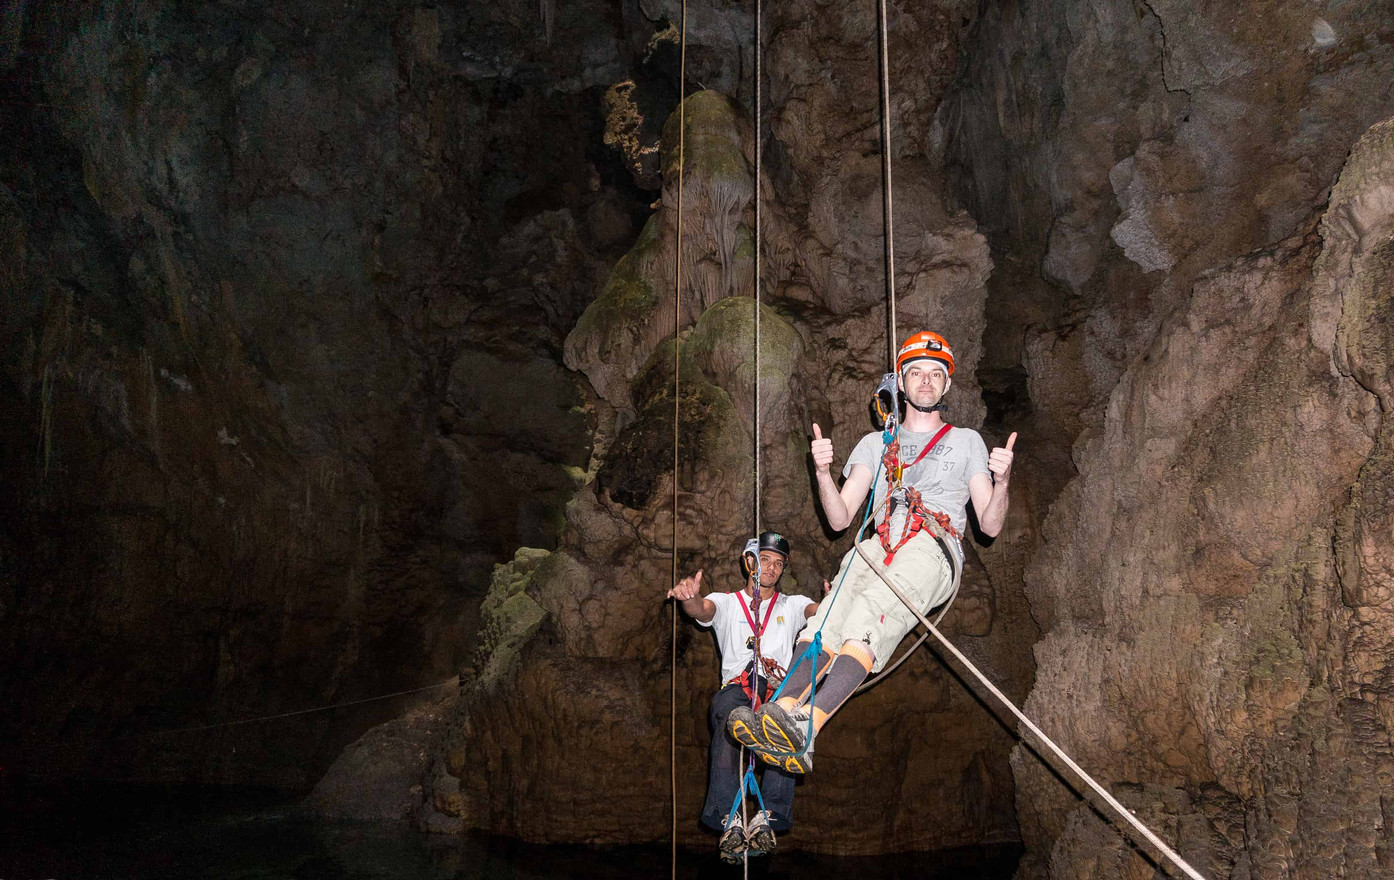 Abseiling in a cave or abyss (Bonito)